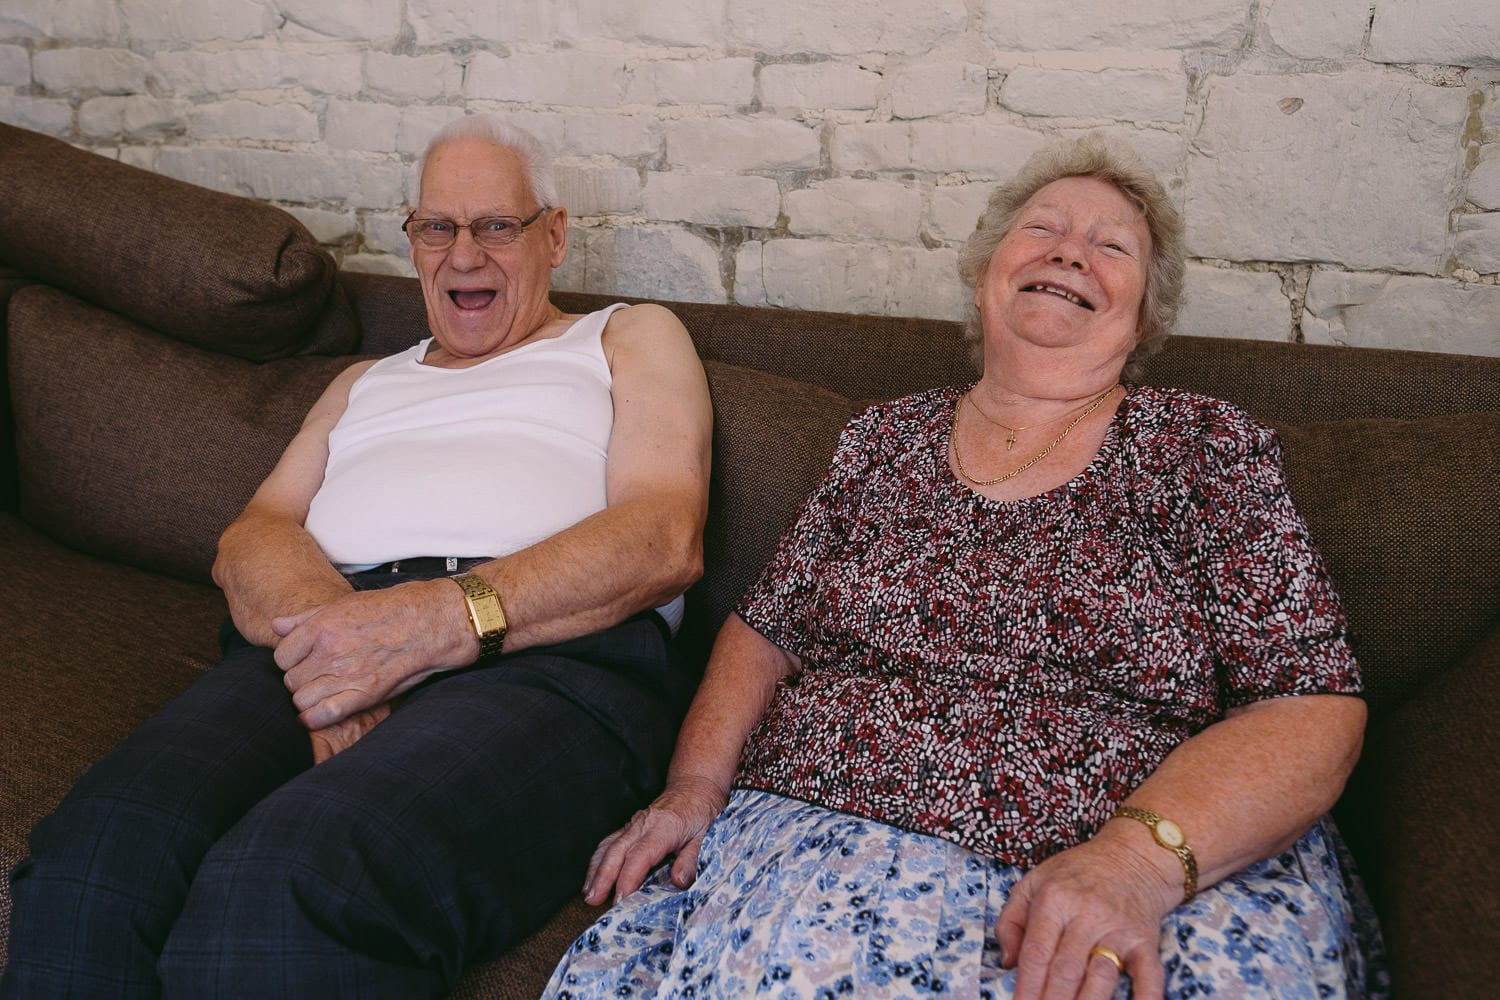 THe grandparents of the bride laughing